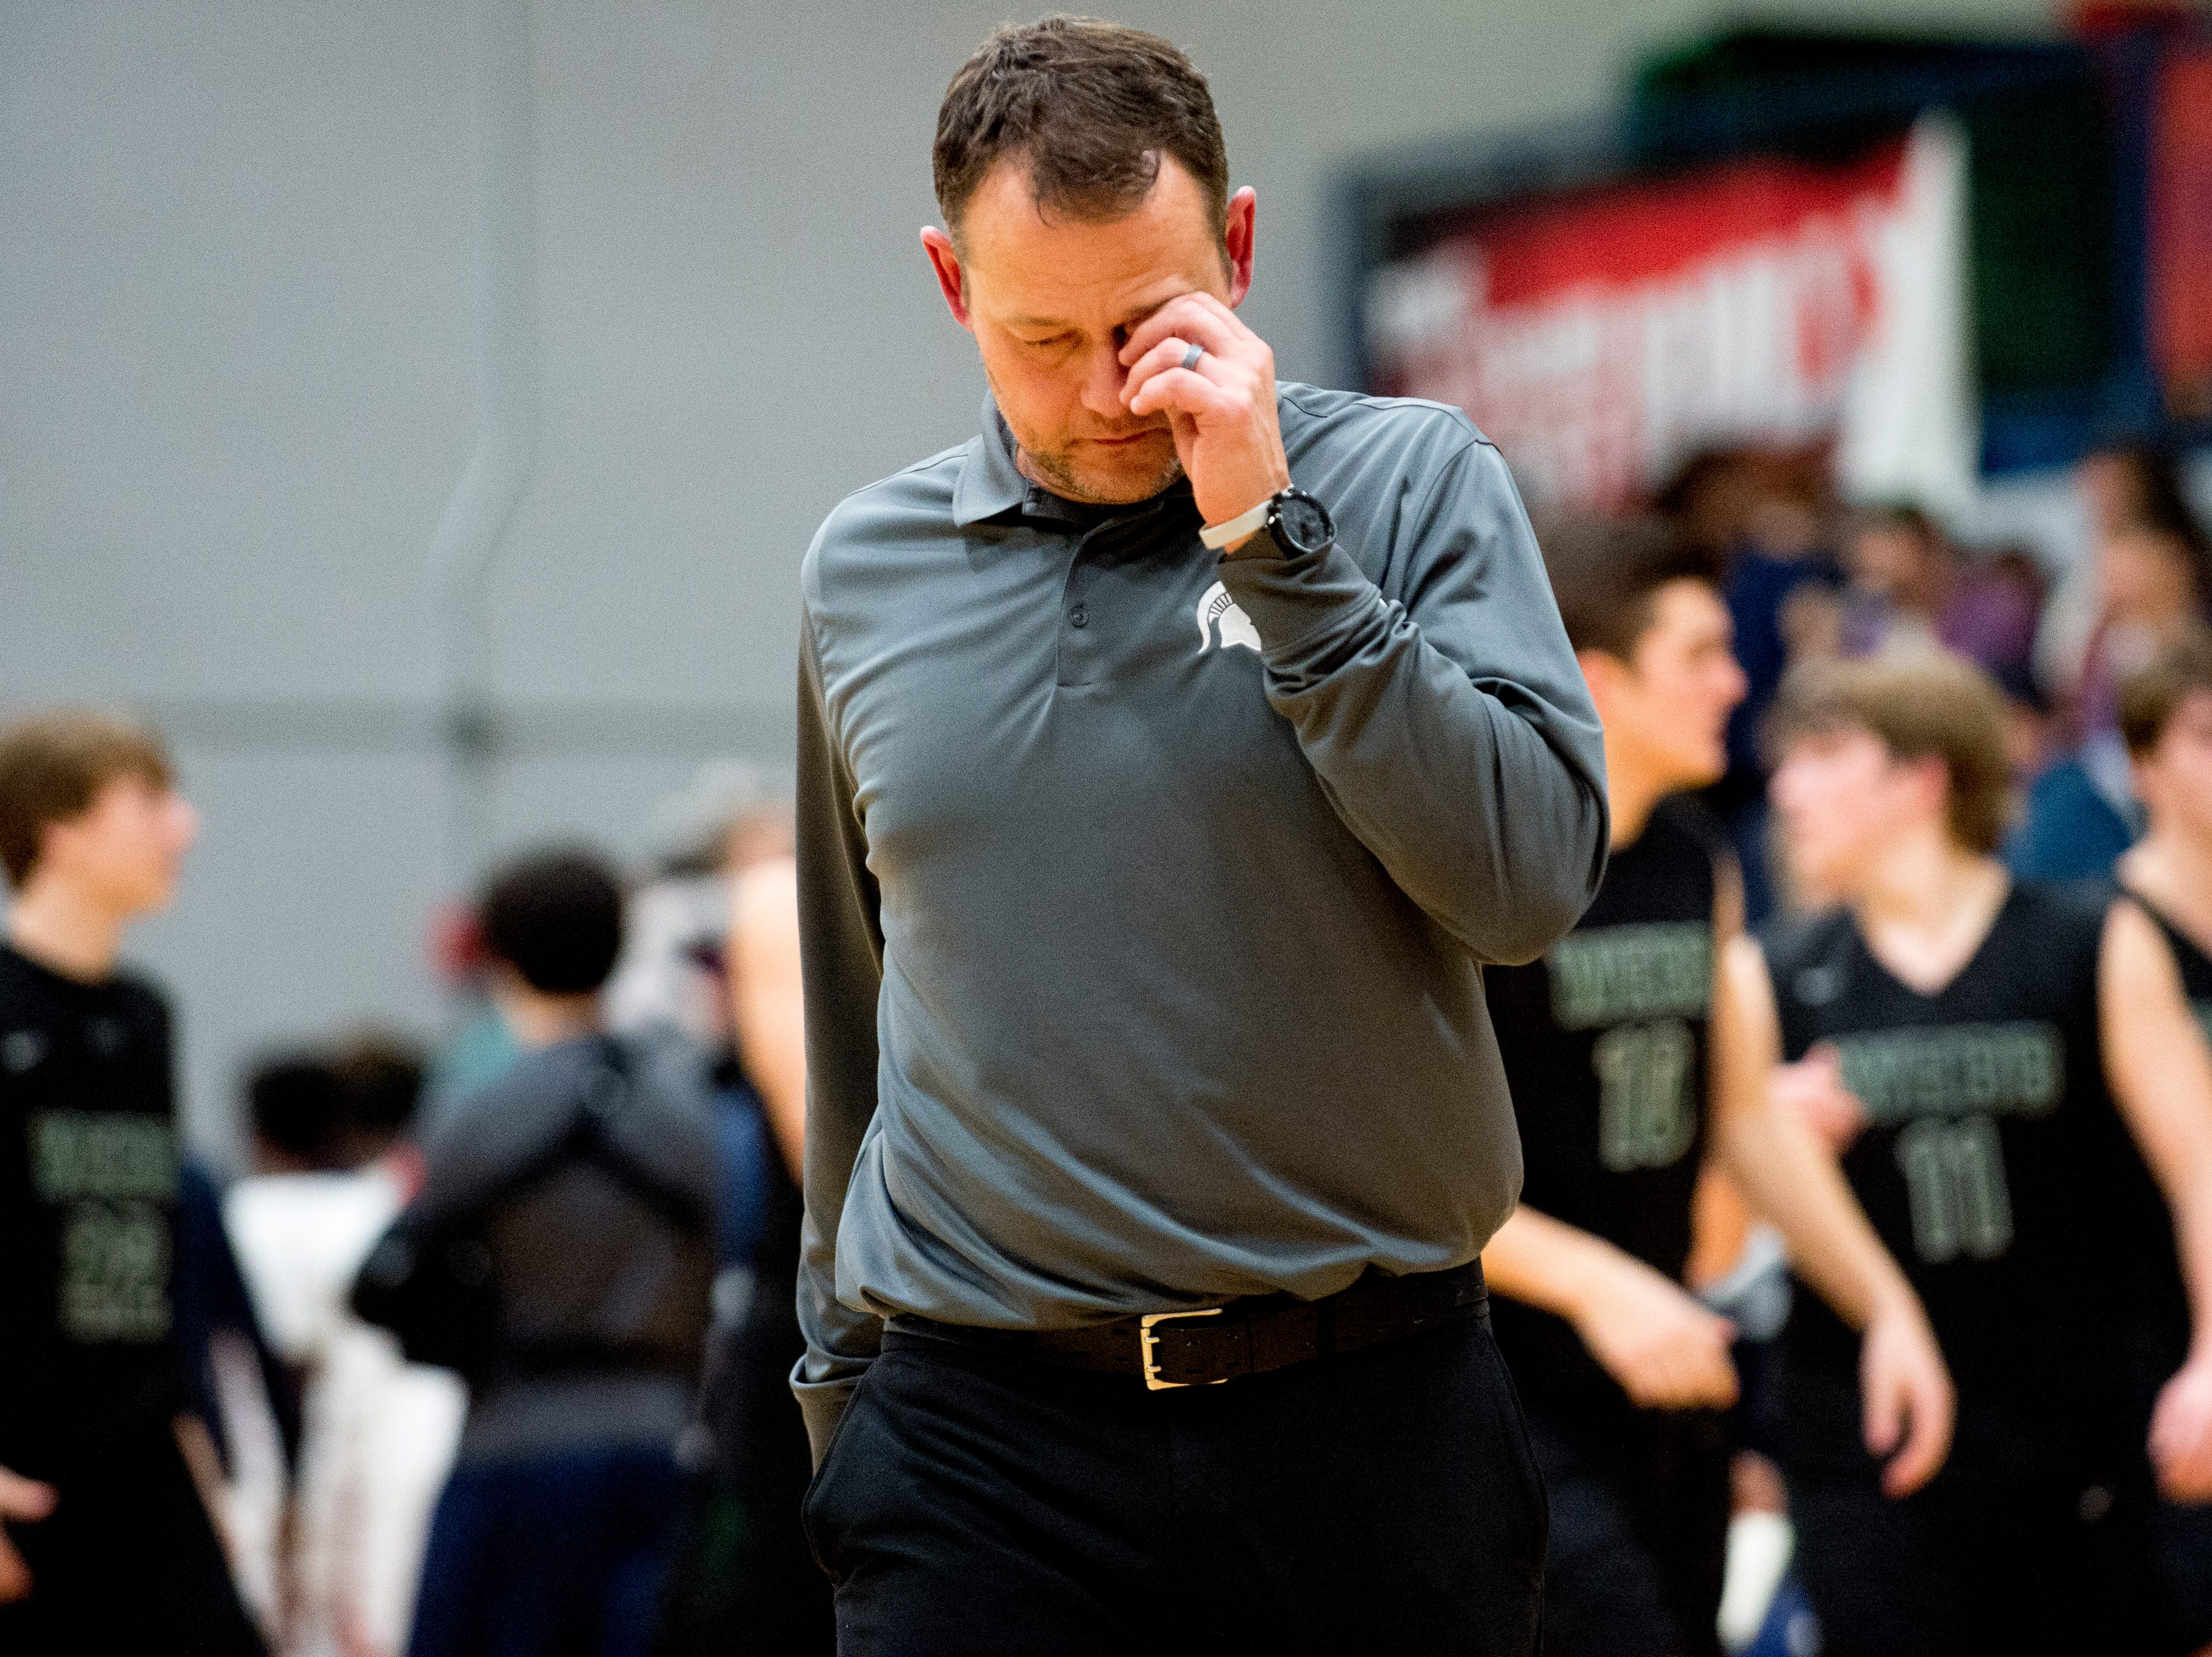 Webb Head Coach Ricky Norris walks off the court at the end of the game during a game between West and Webb at West High School in Knoxville, Tennessee on Friday, January 4, 2019.